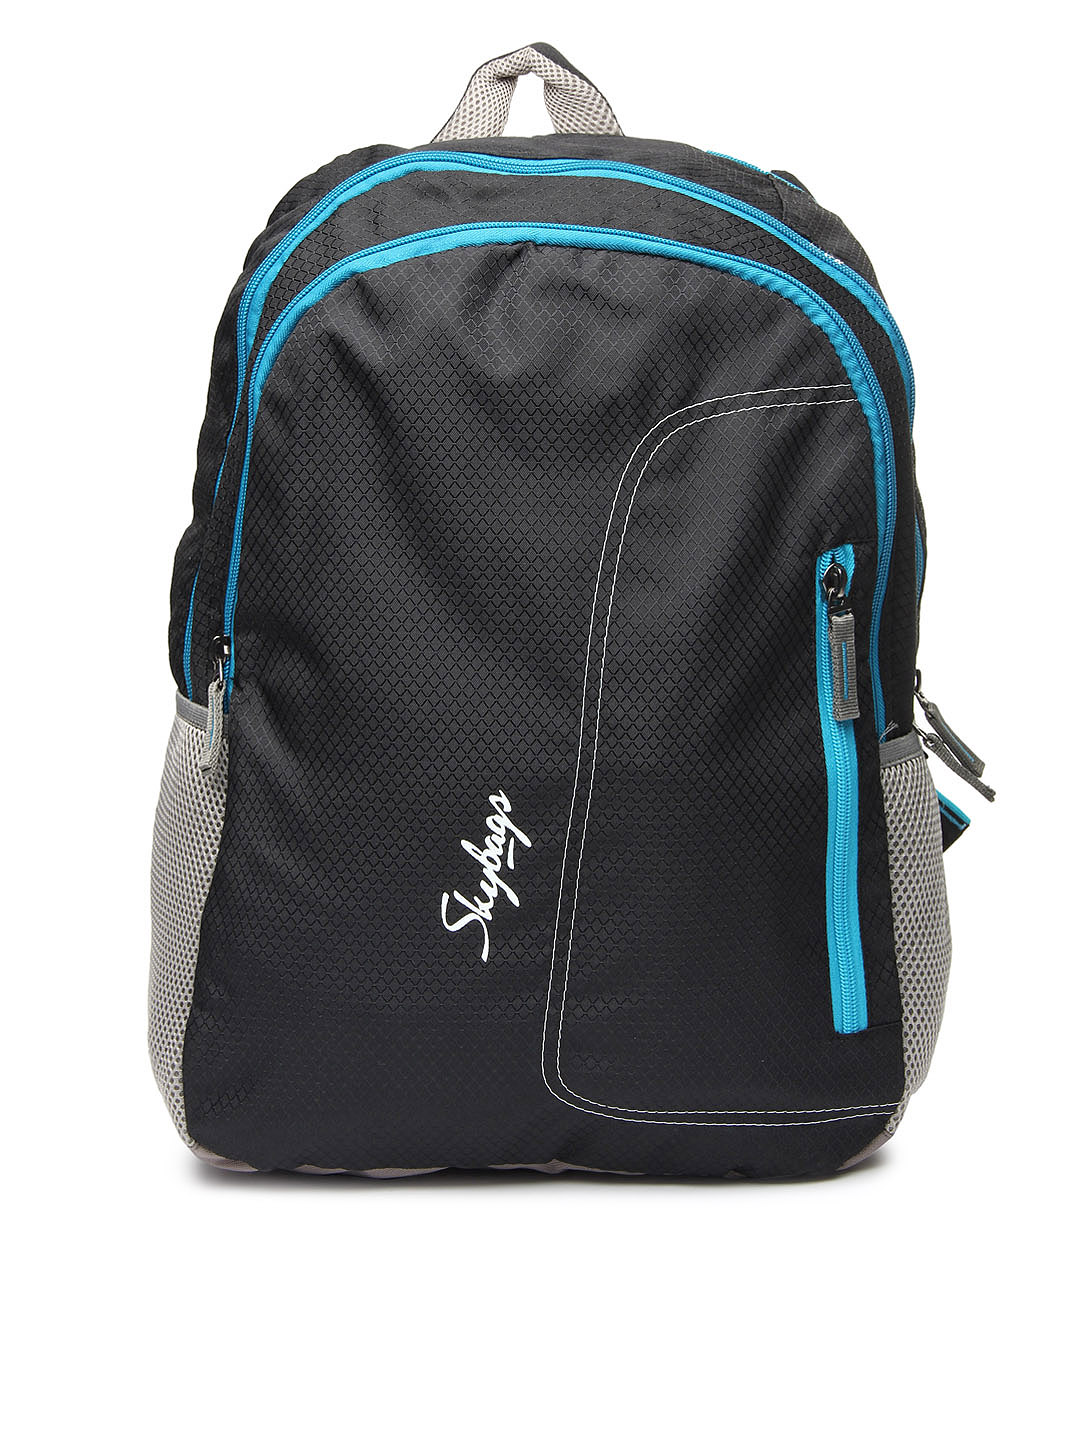 Puma school bags online shopping india